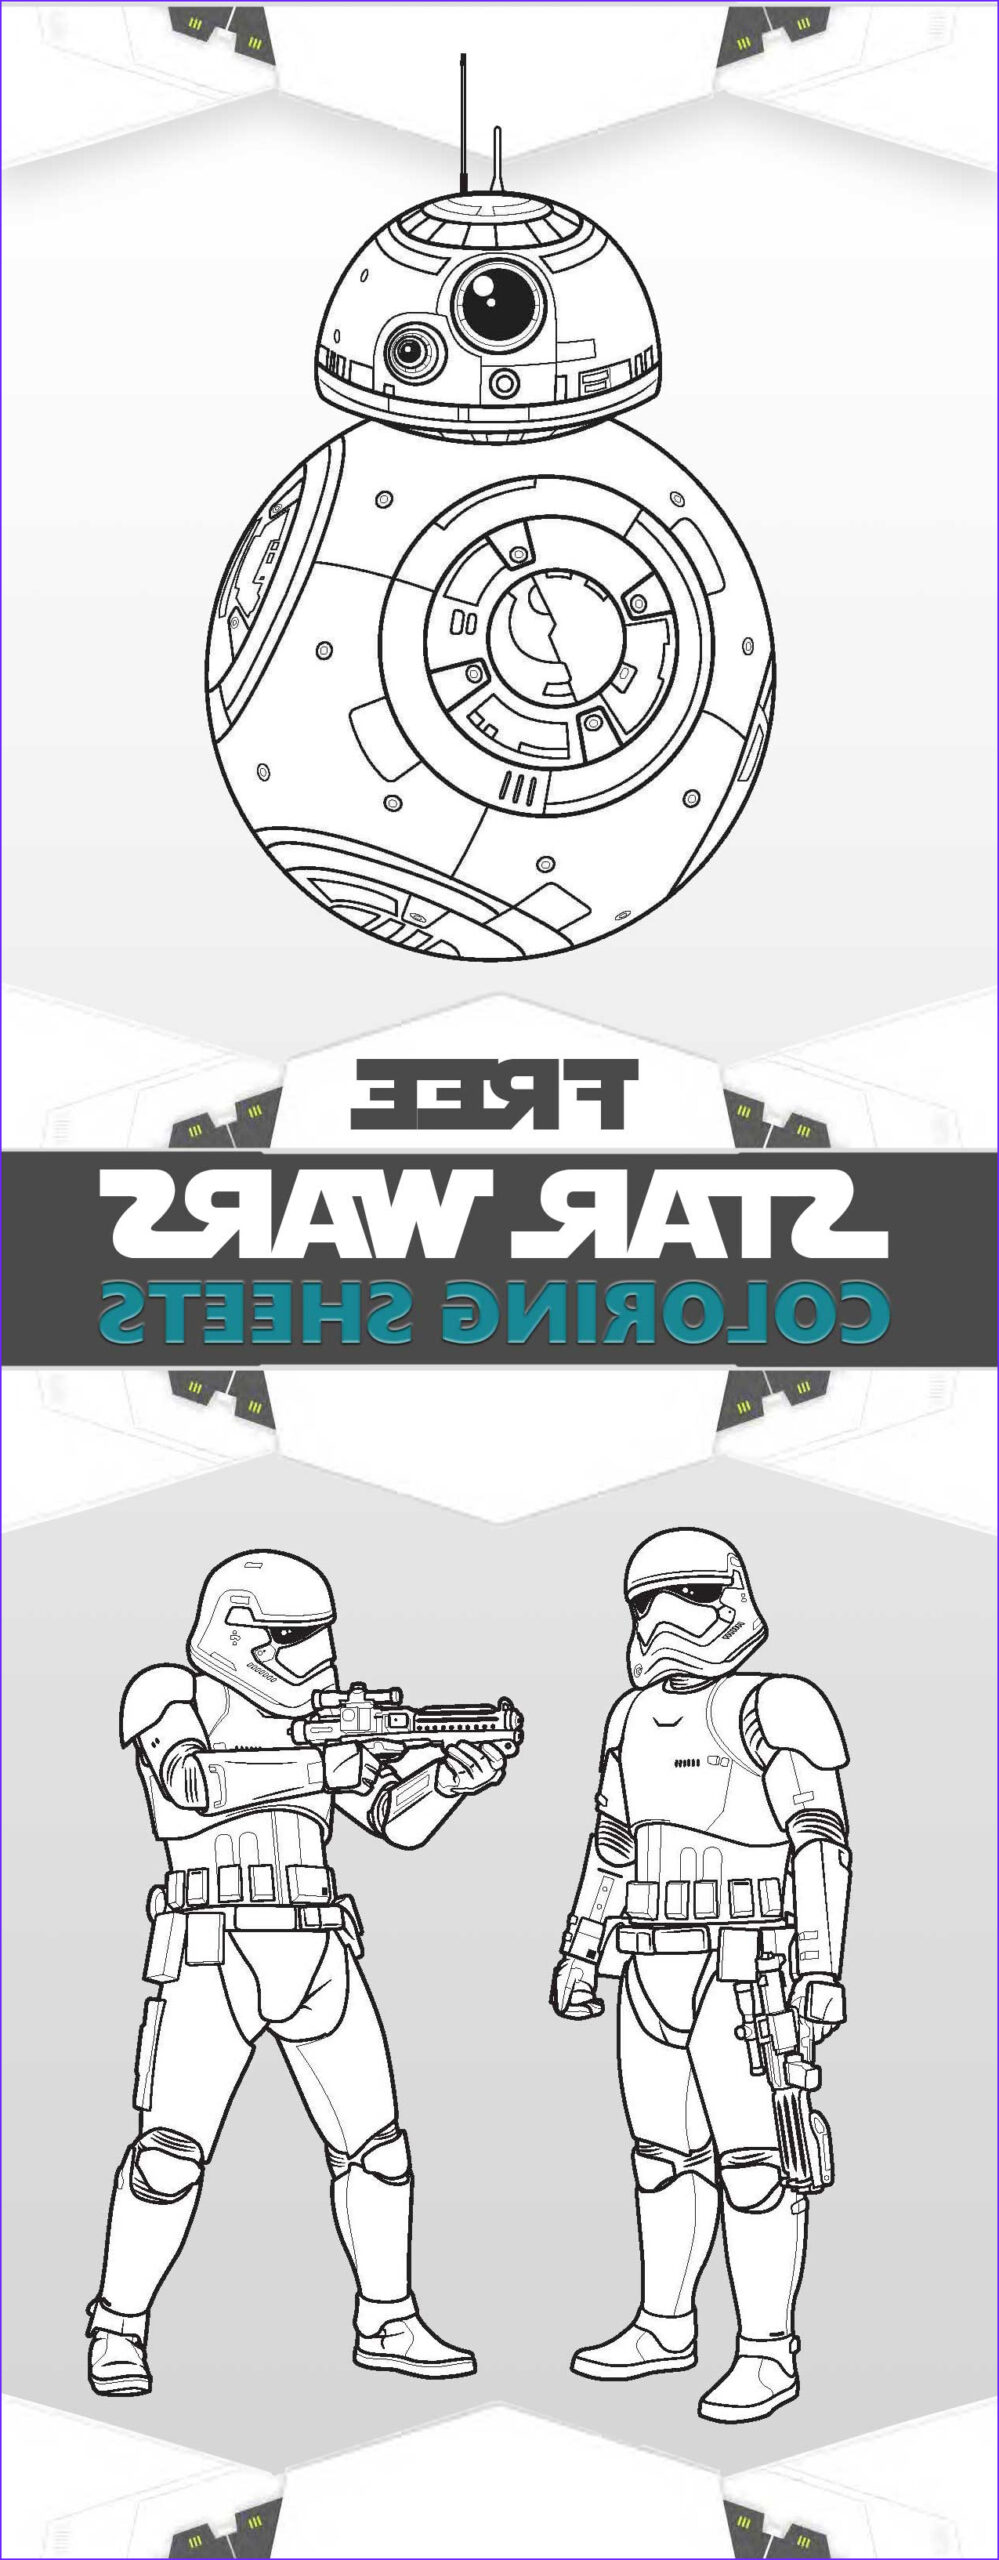 Star Wars the force Awakens Coloring Pages Unique Collection Star Wars Coloring Pages the force Awakens Coloring Pages